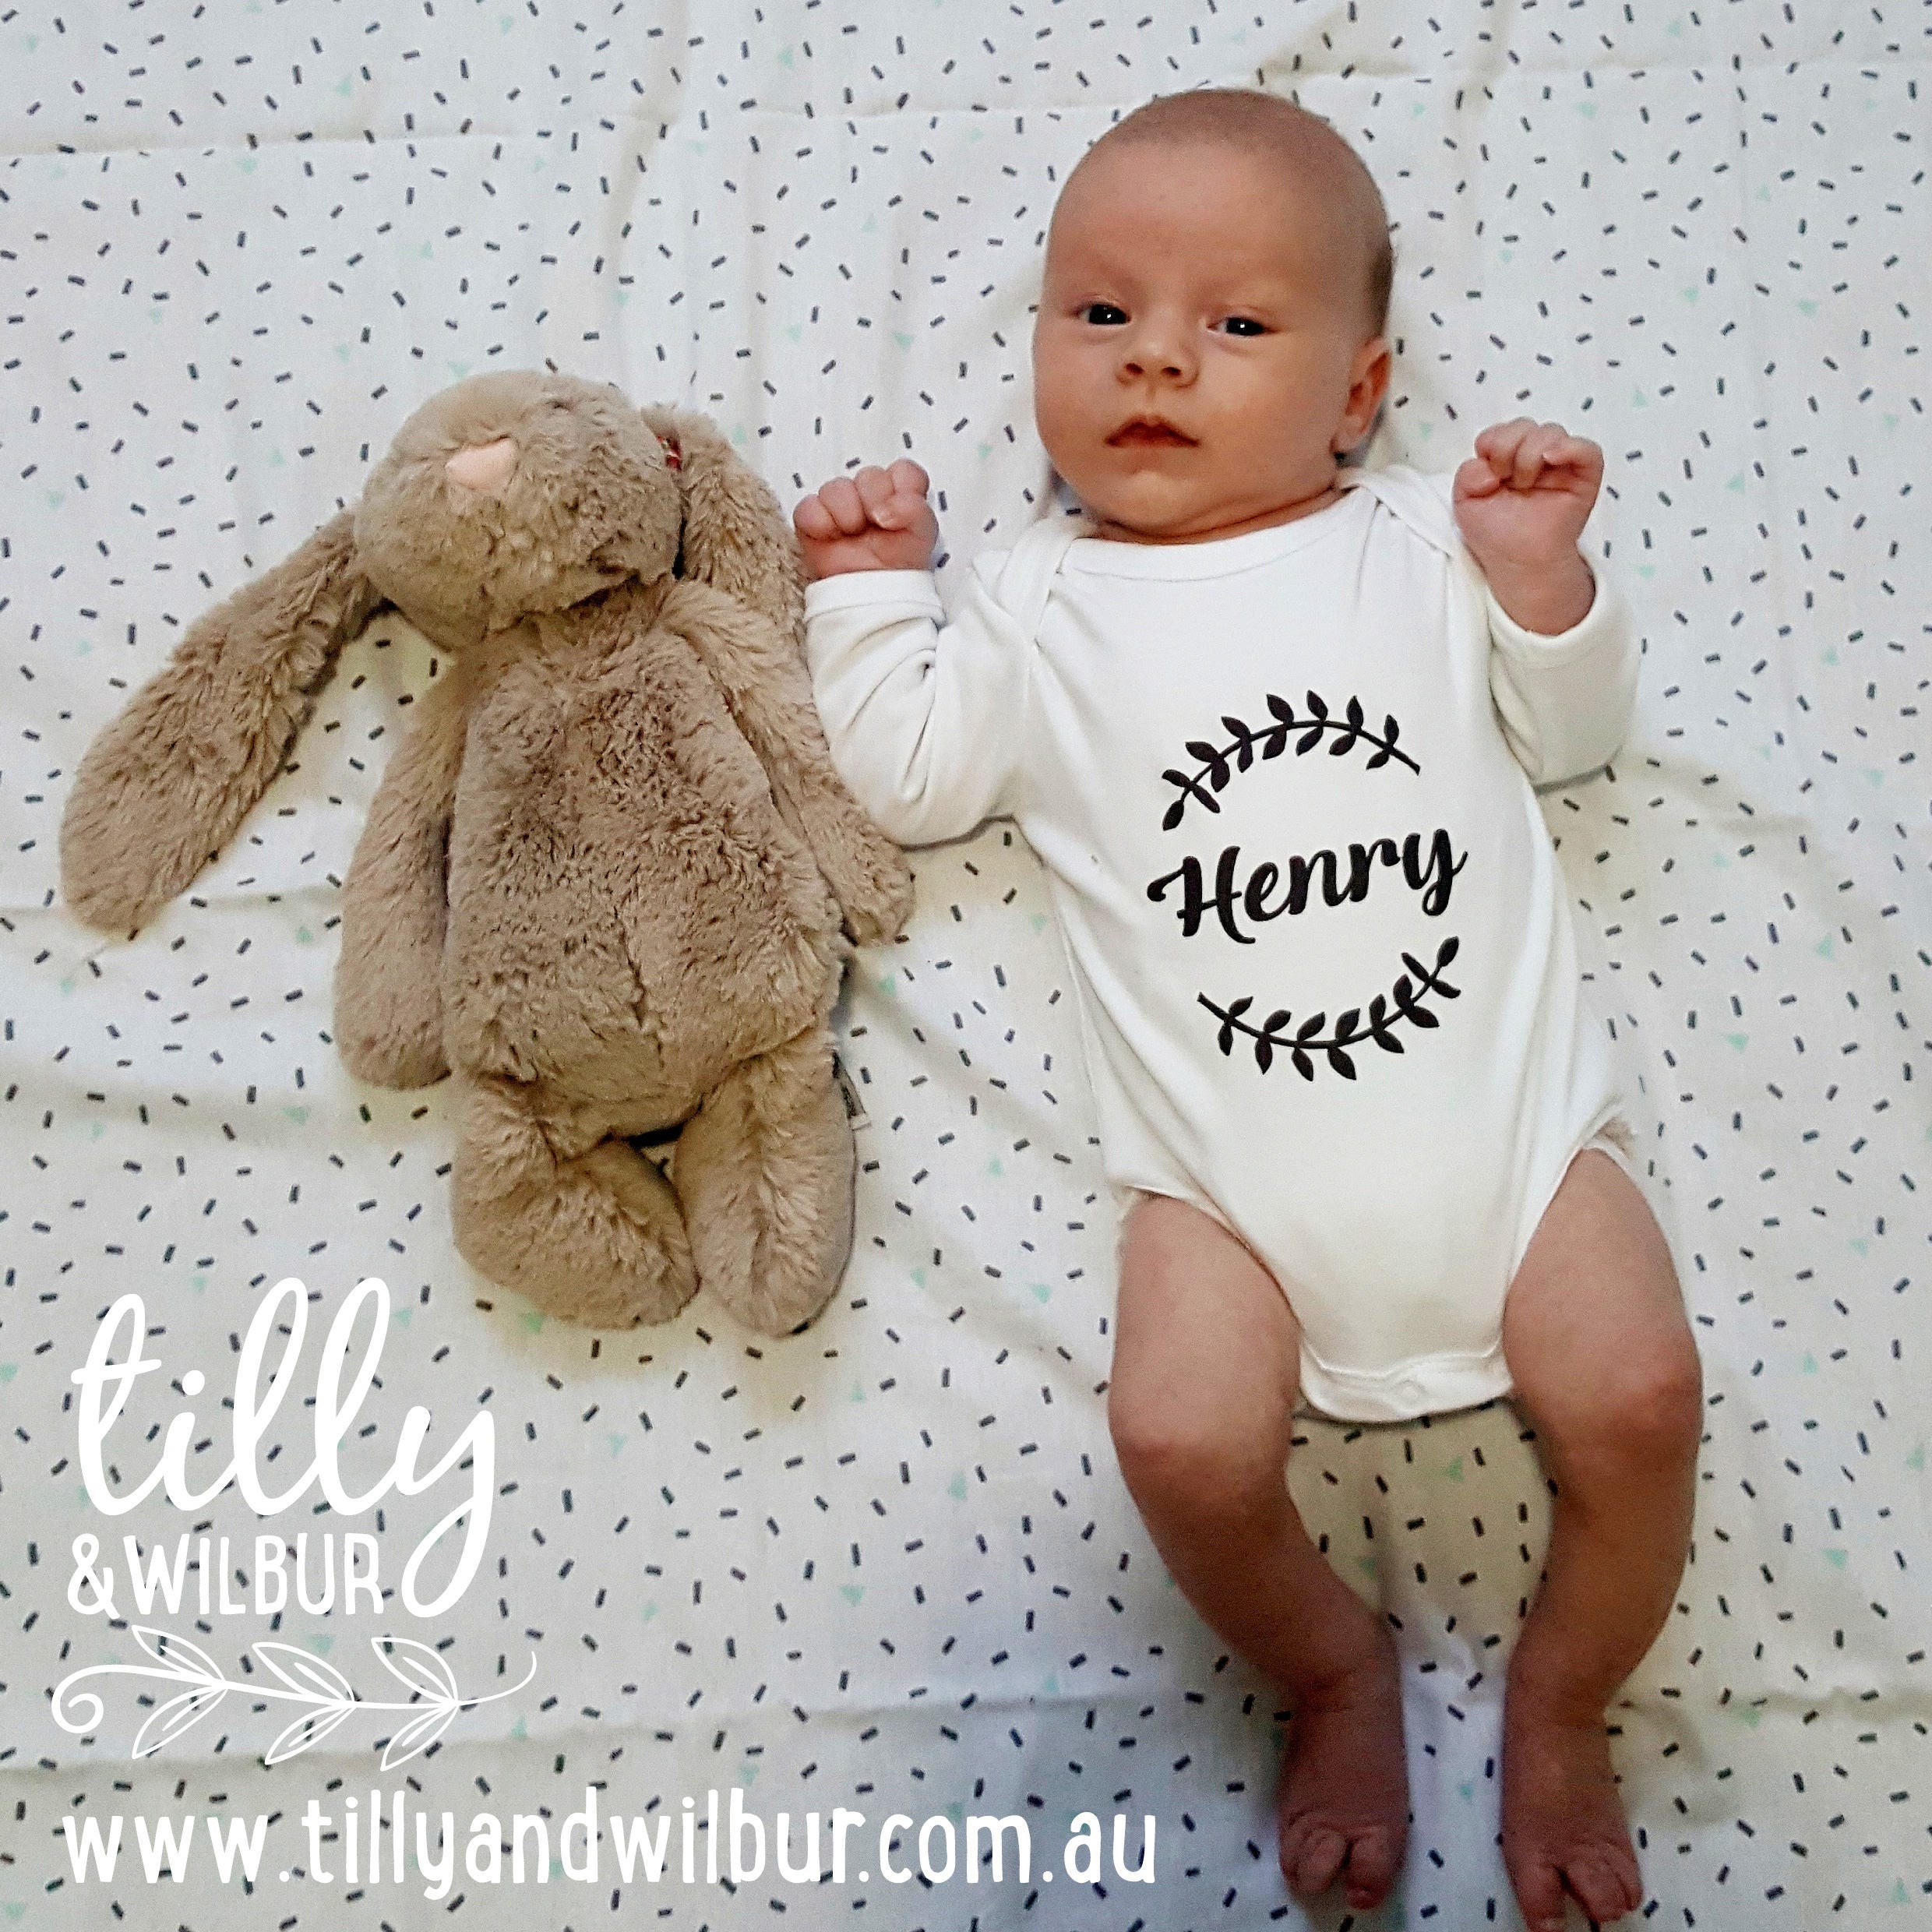 Tillywilbur personalised clothing gifts personalised baby bodysuit for new arrivals baby gift newborn gift personalised baby gift negle Choice Image